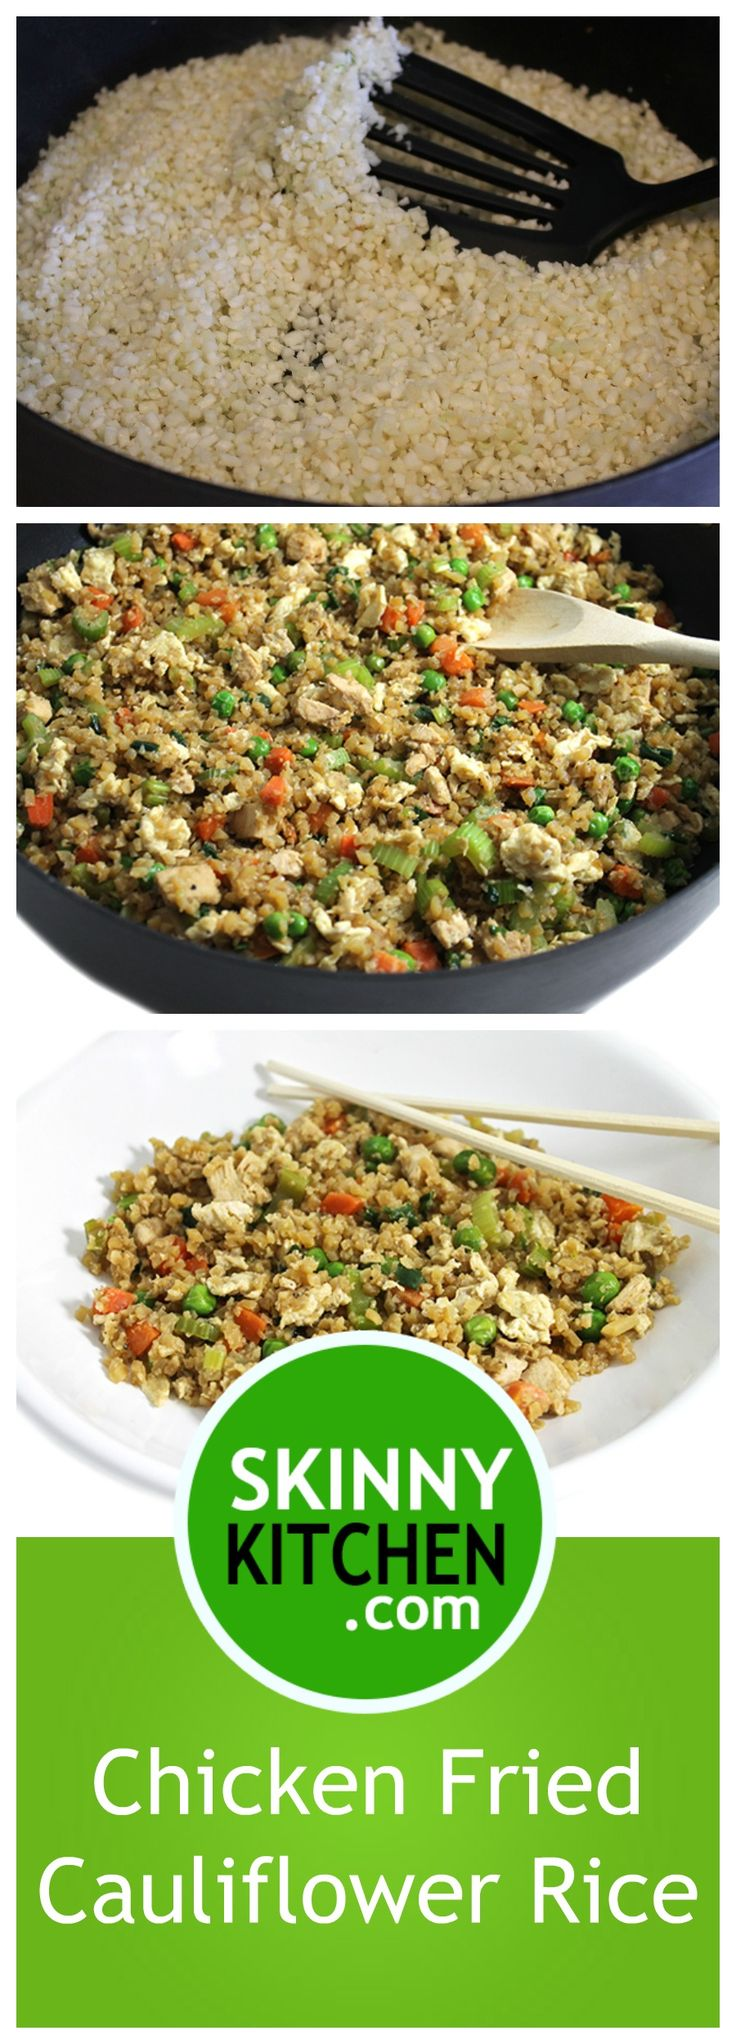 (NEW) Amazing Skinny Chicken Fried Cauliflower Rice. It's the most fantastic fried rice, without rice. It's made with cauliflower!  Each serving,188 calories, 8g fat & 3 SmartPoints. http://www.skinnykitchen.com/recipes/amazing-skinny-chicken-fried-cauliflower-rice/